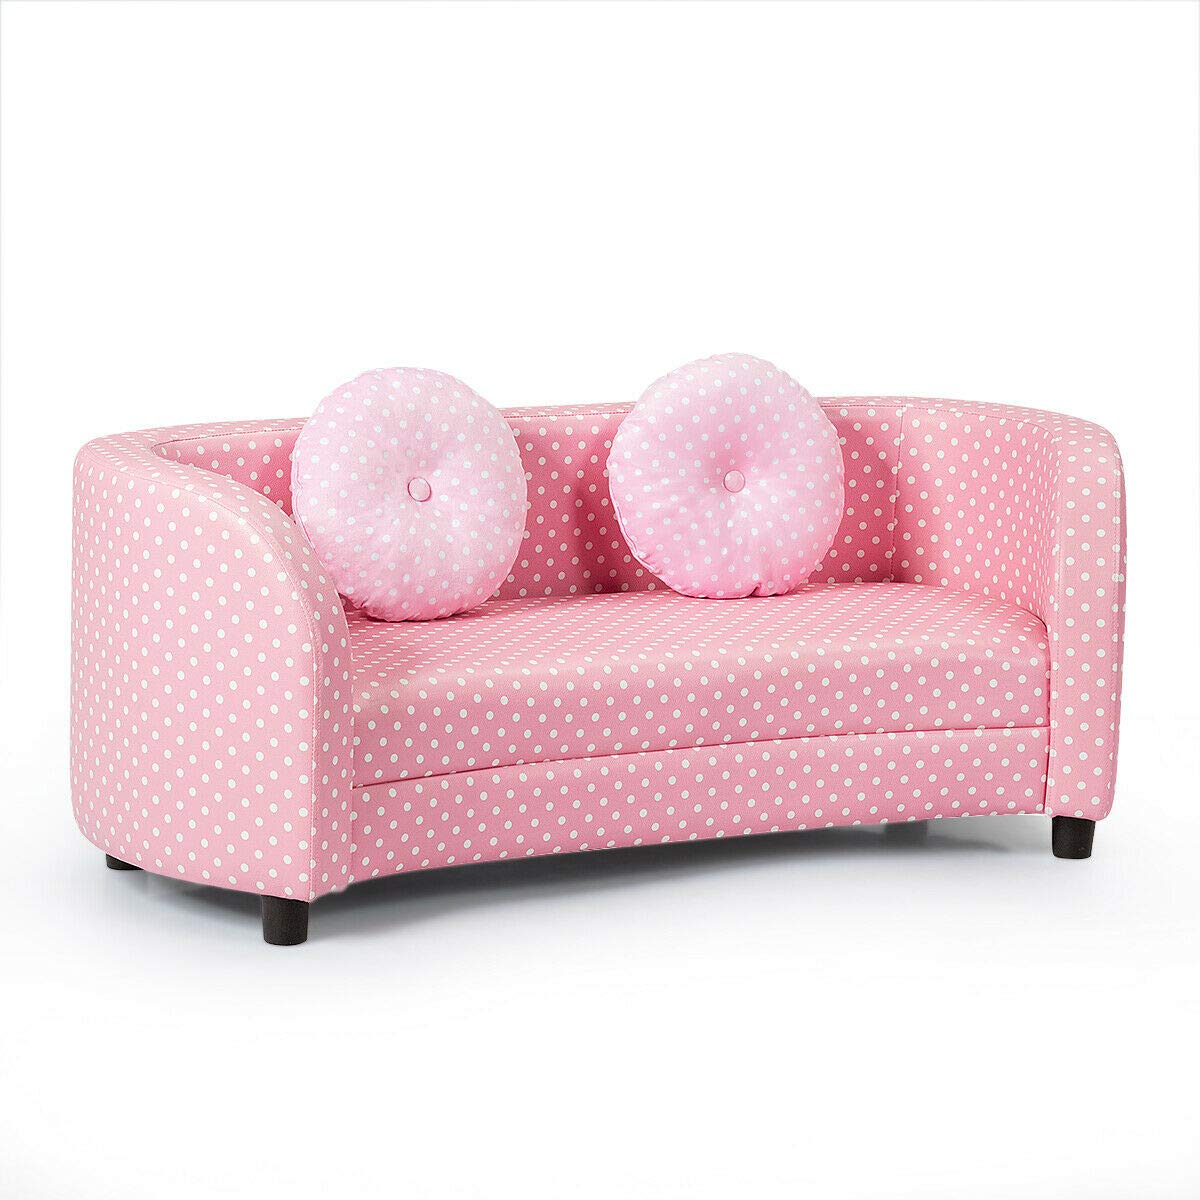 Pink 2-Seat Children Girls Armrest Chair Loveseat Kids Sofa w/Cloth Pillows with Ebook